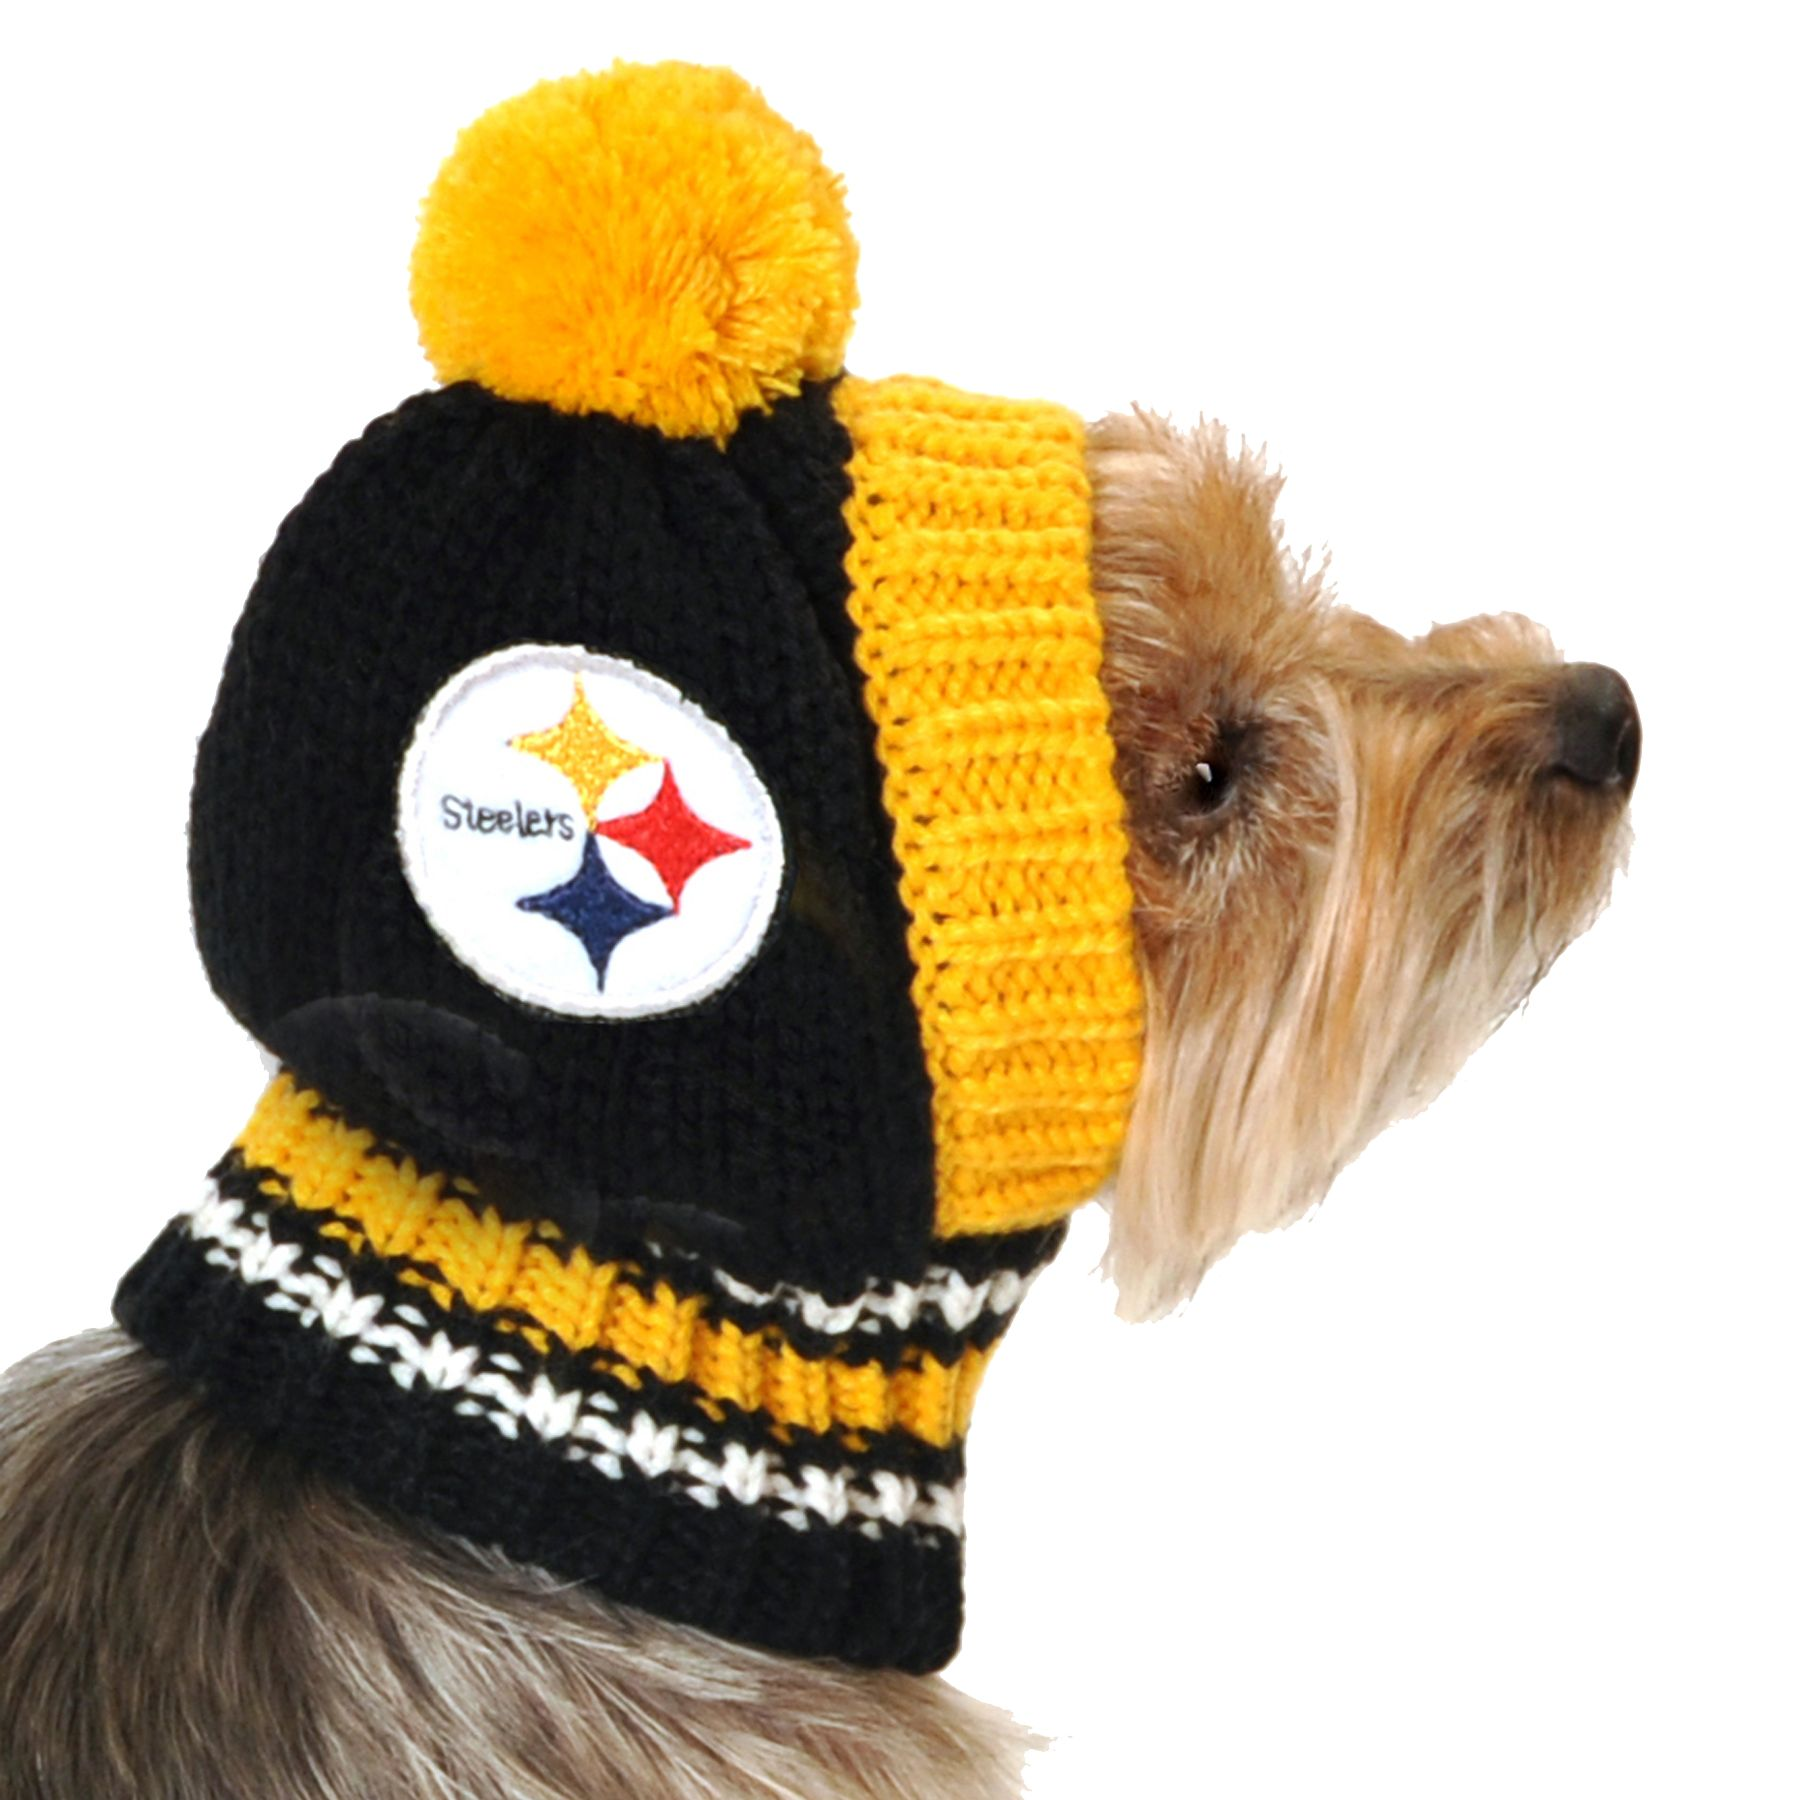 Pittsburgh Steelers NFL Knit Hat size: Medium